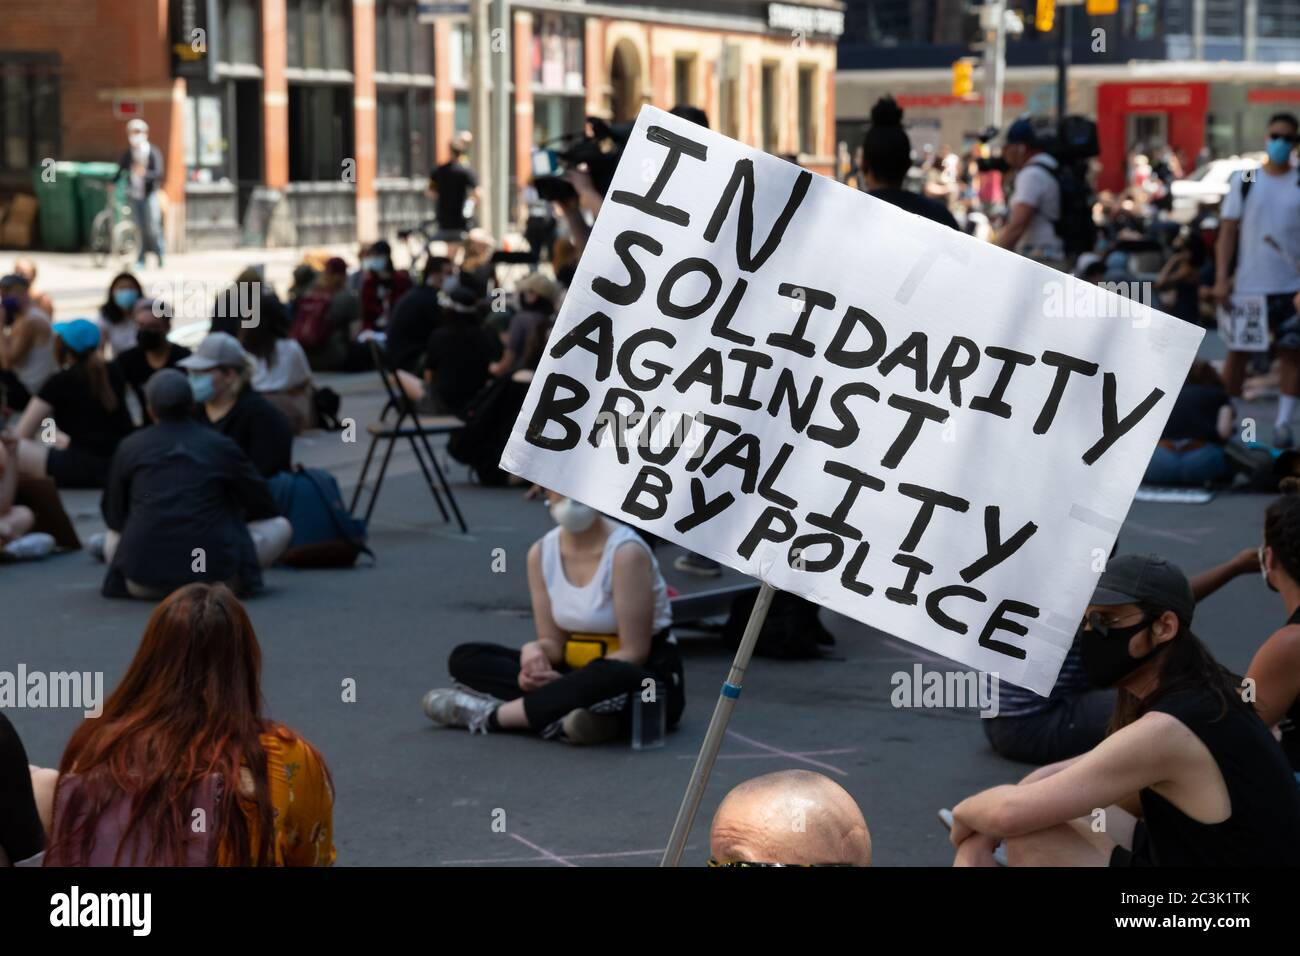 """Protesters join in solidarity against police brutality at a """"Not Another Black Life"""" protest in Toronto, Ontario. Stock Photo"""